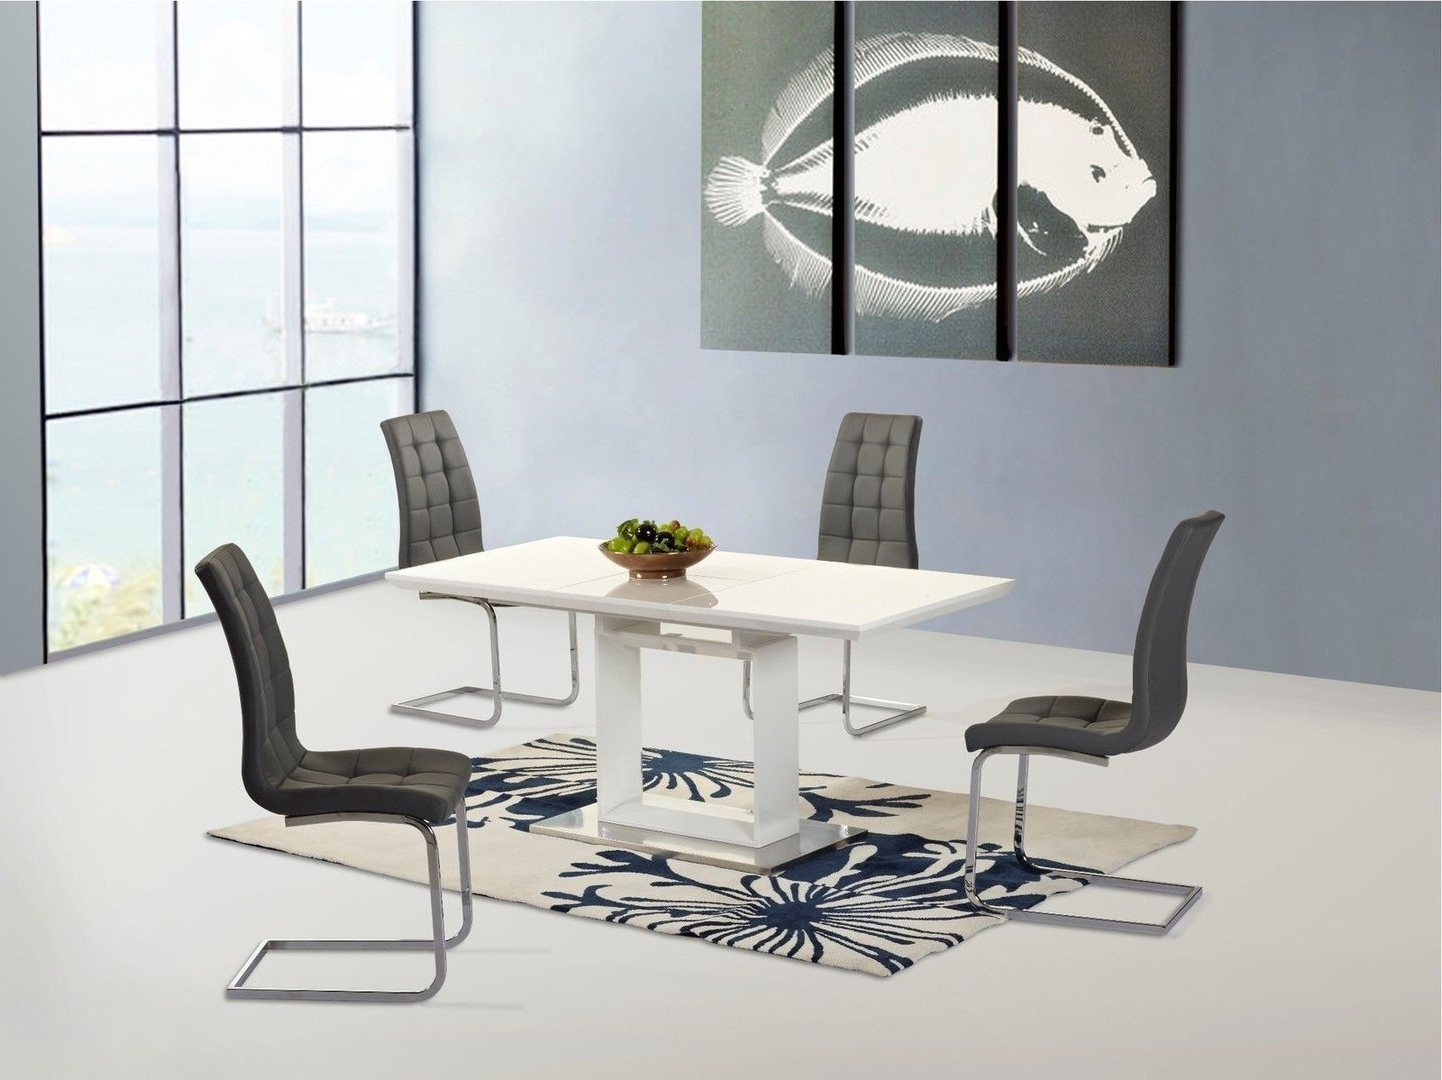 2017 New White High Gloss Extending Dining Table And 6 Grey Chairs Regarding Extending White Gloss Dining Tables (View 25 of 25)